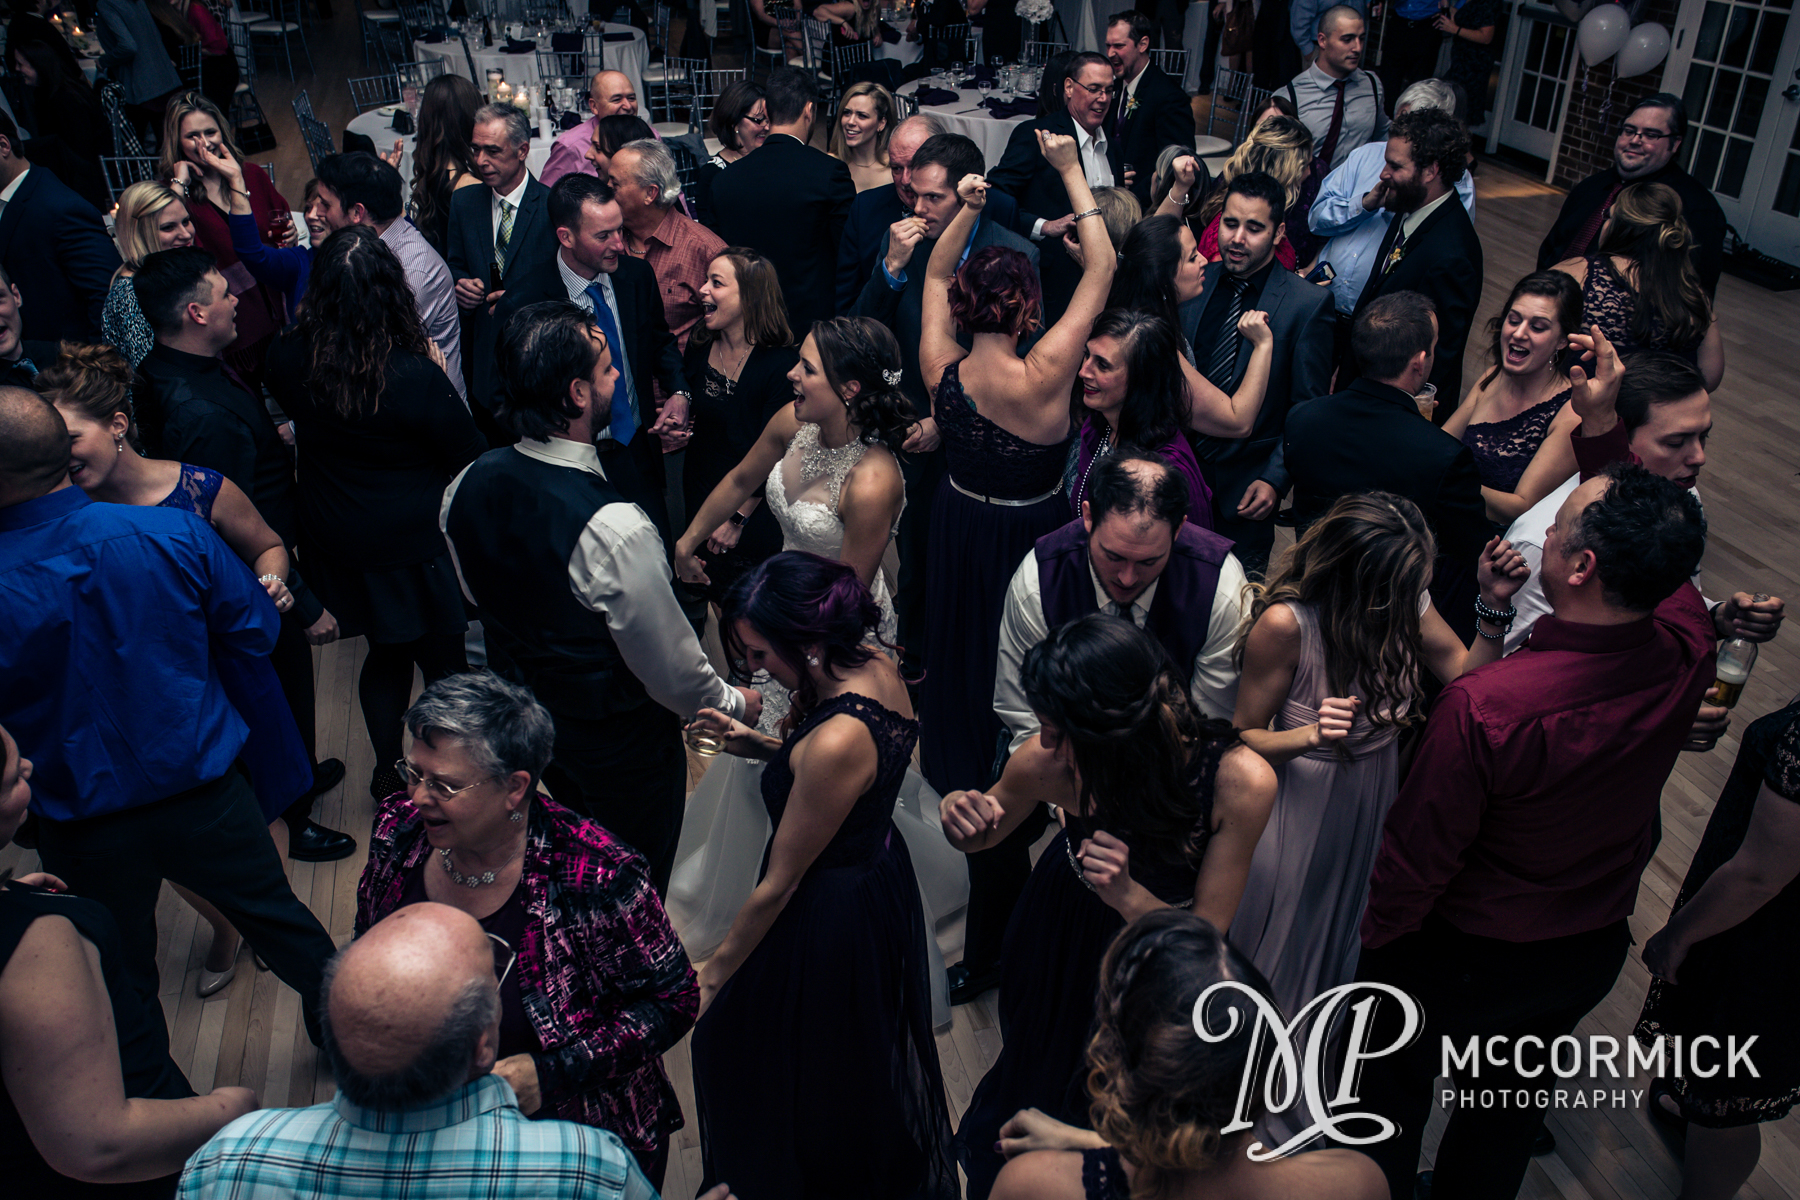 Cambridge Kitchener Waterloo Wedding DJ | People Dancing